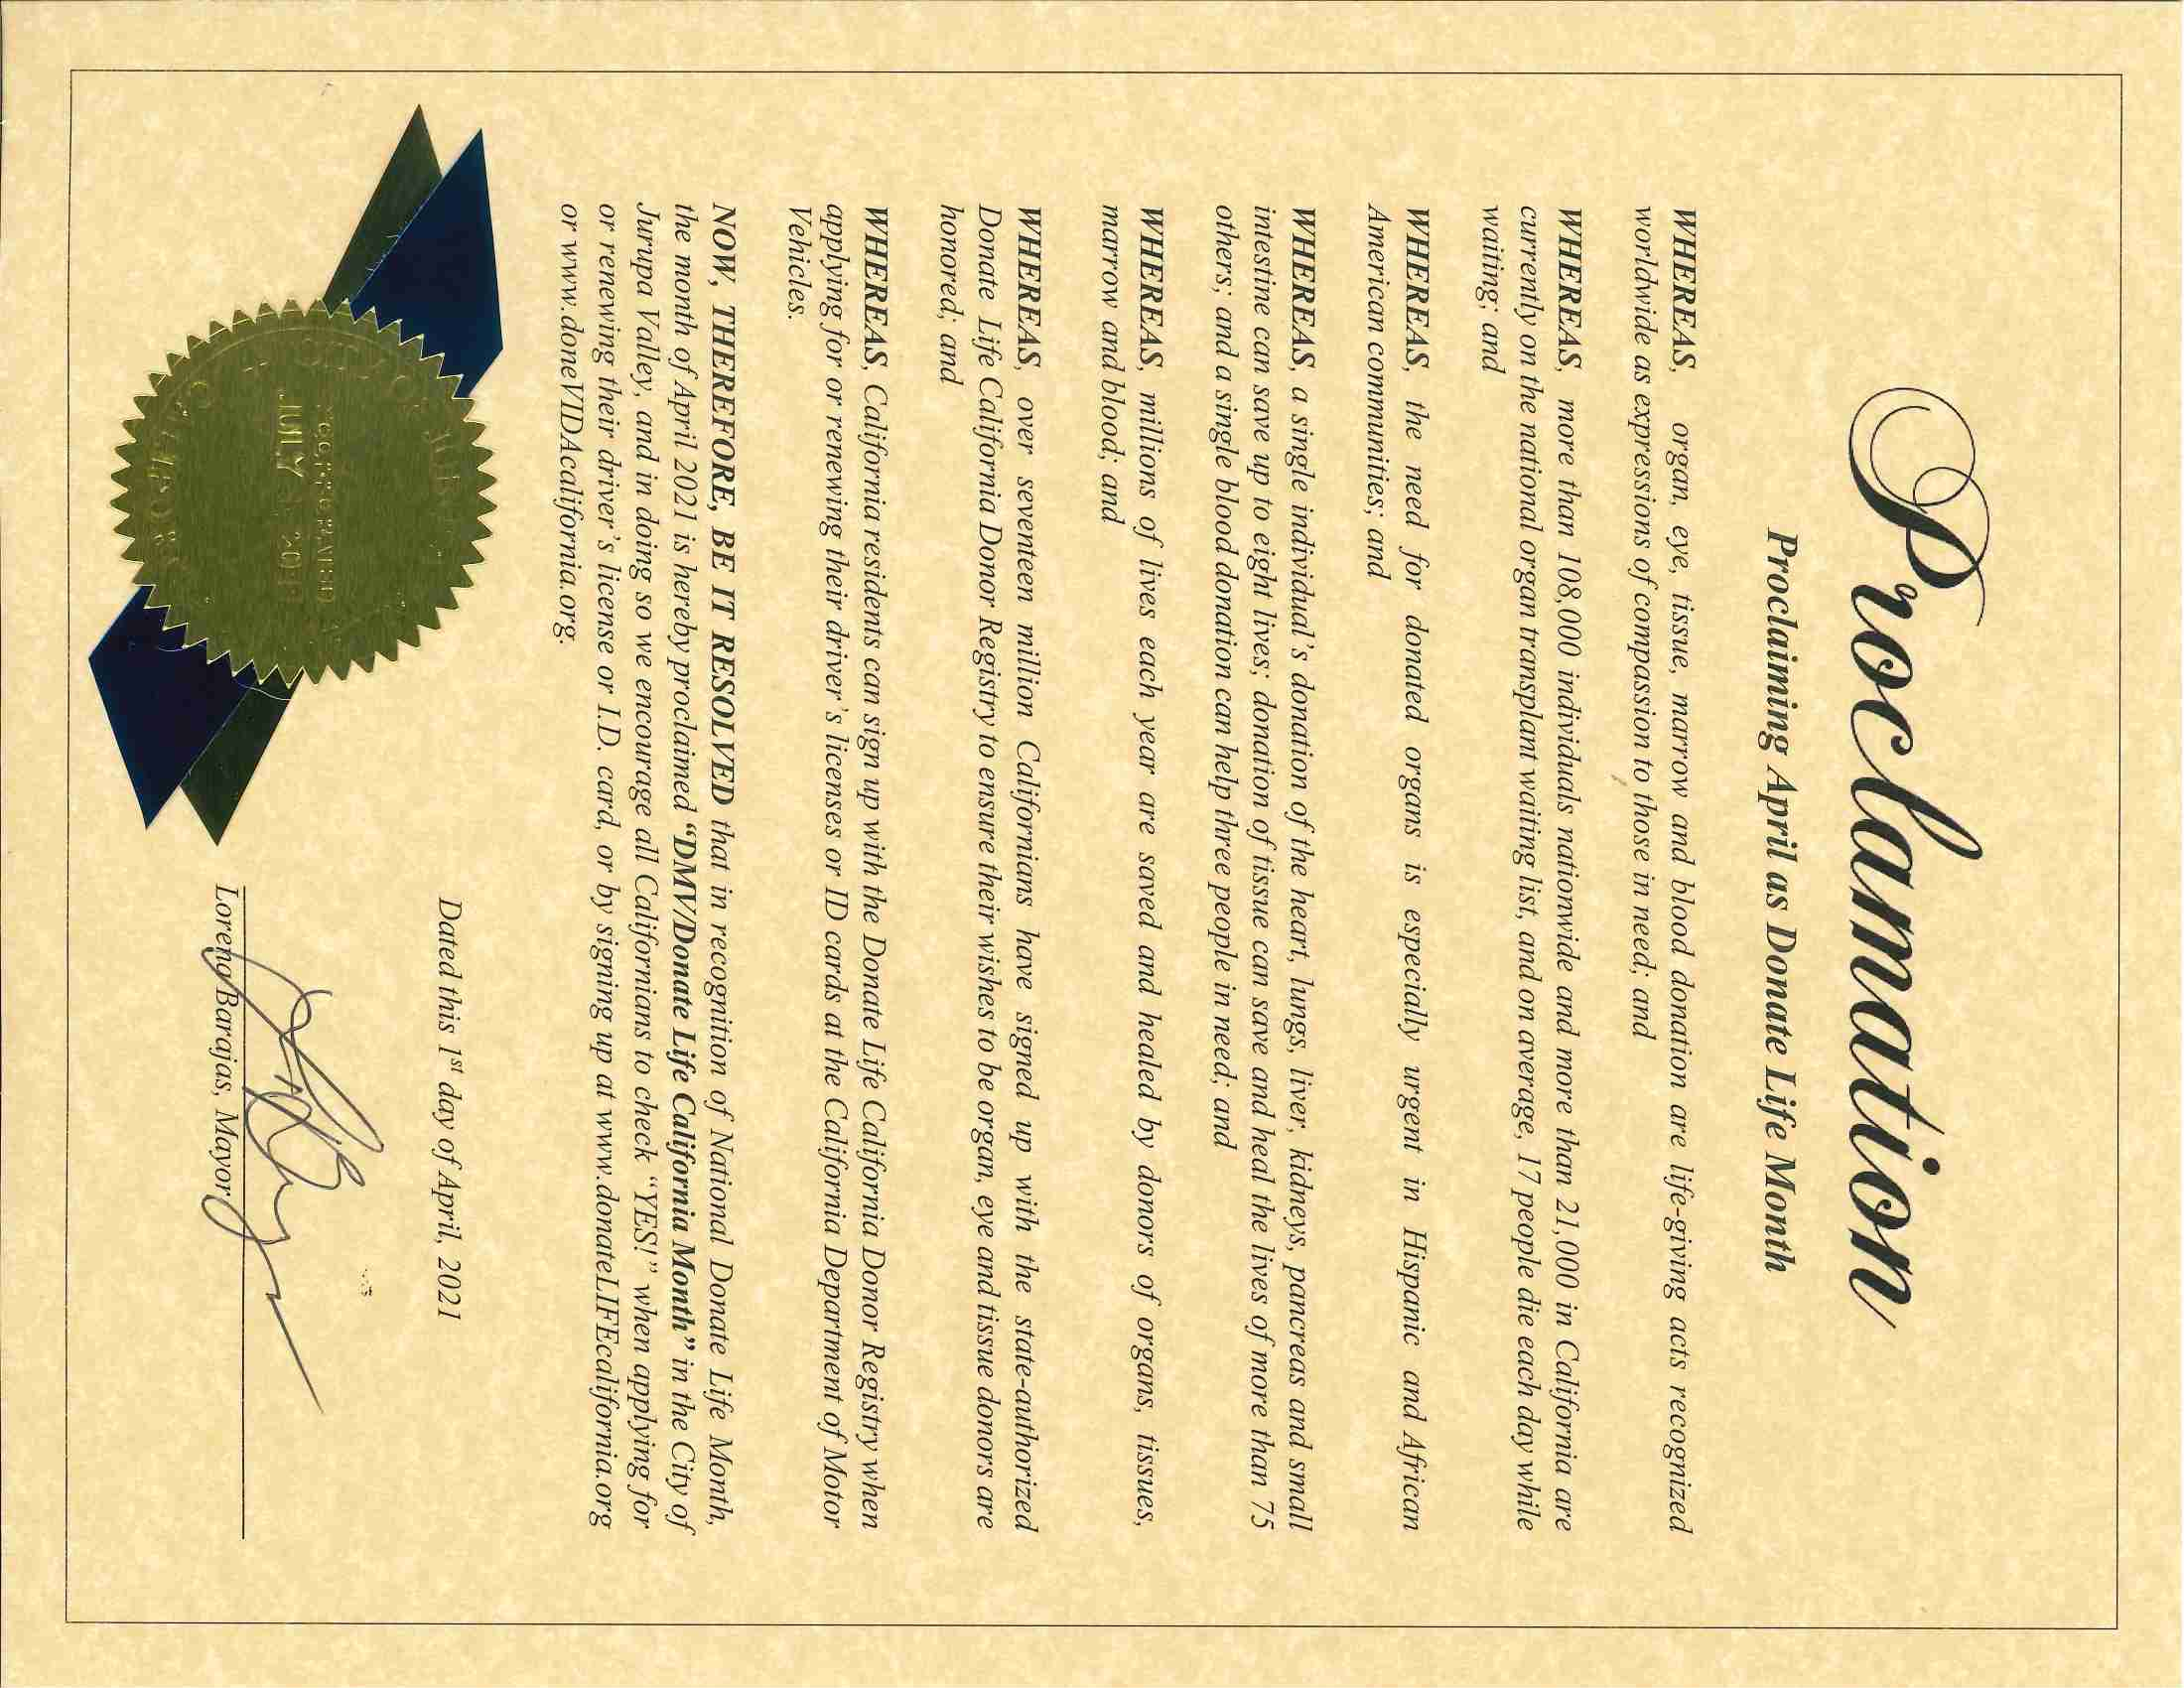 040121 - Proclamation (Donate Life - Scanned)